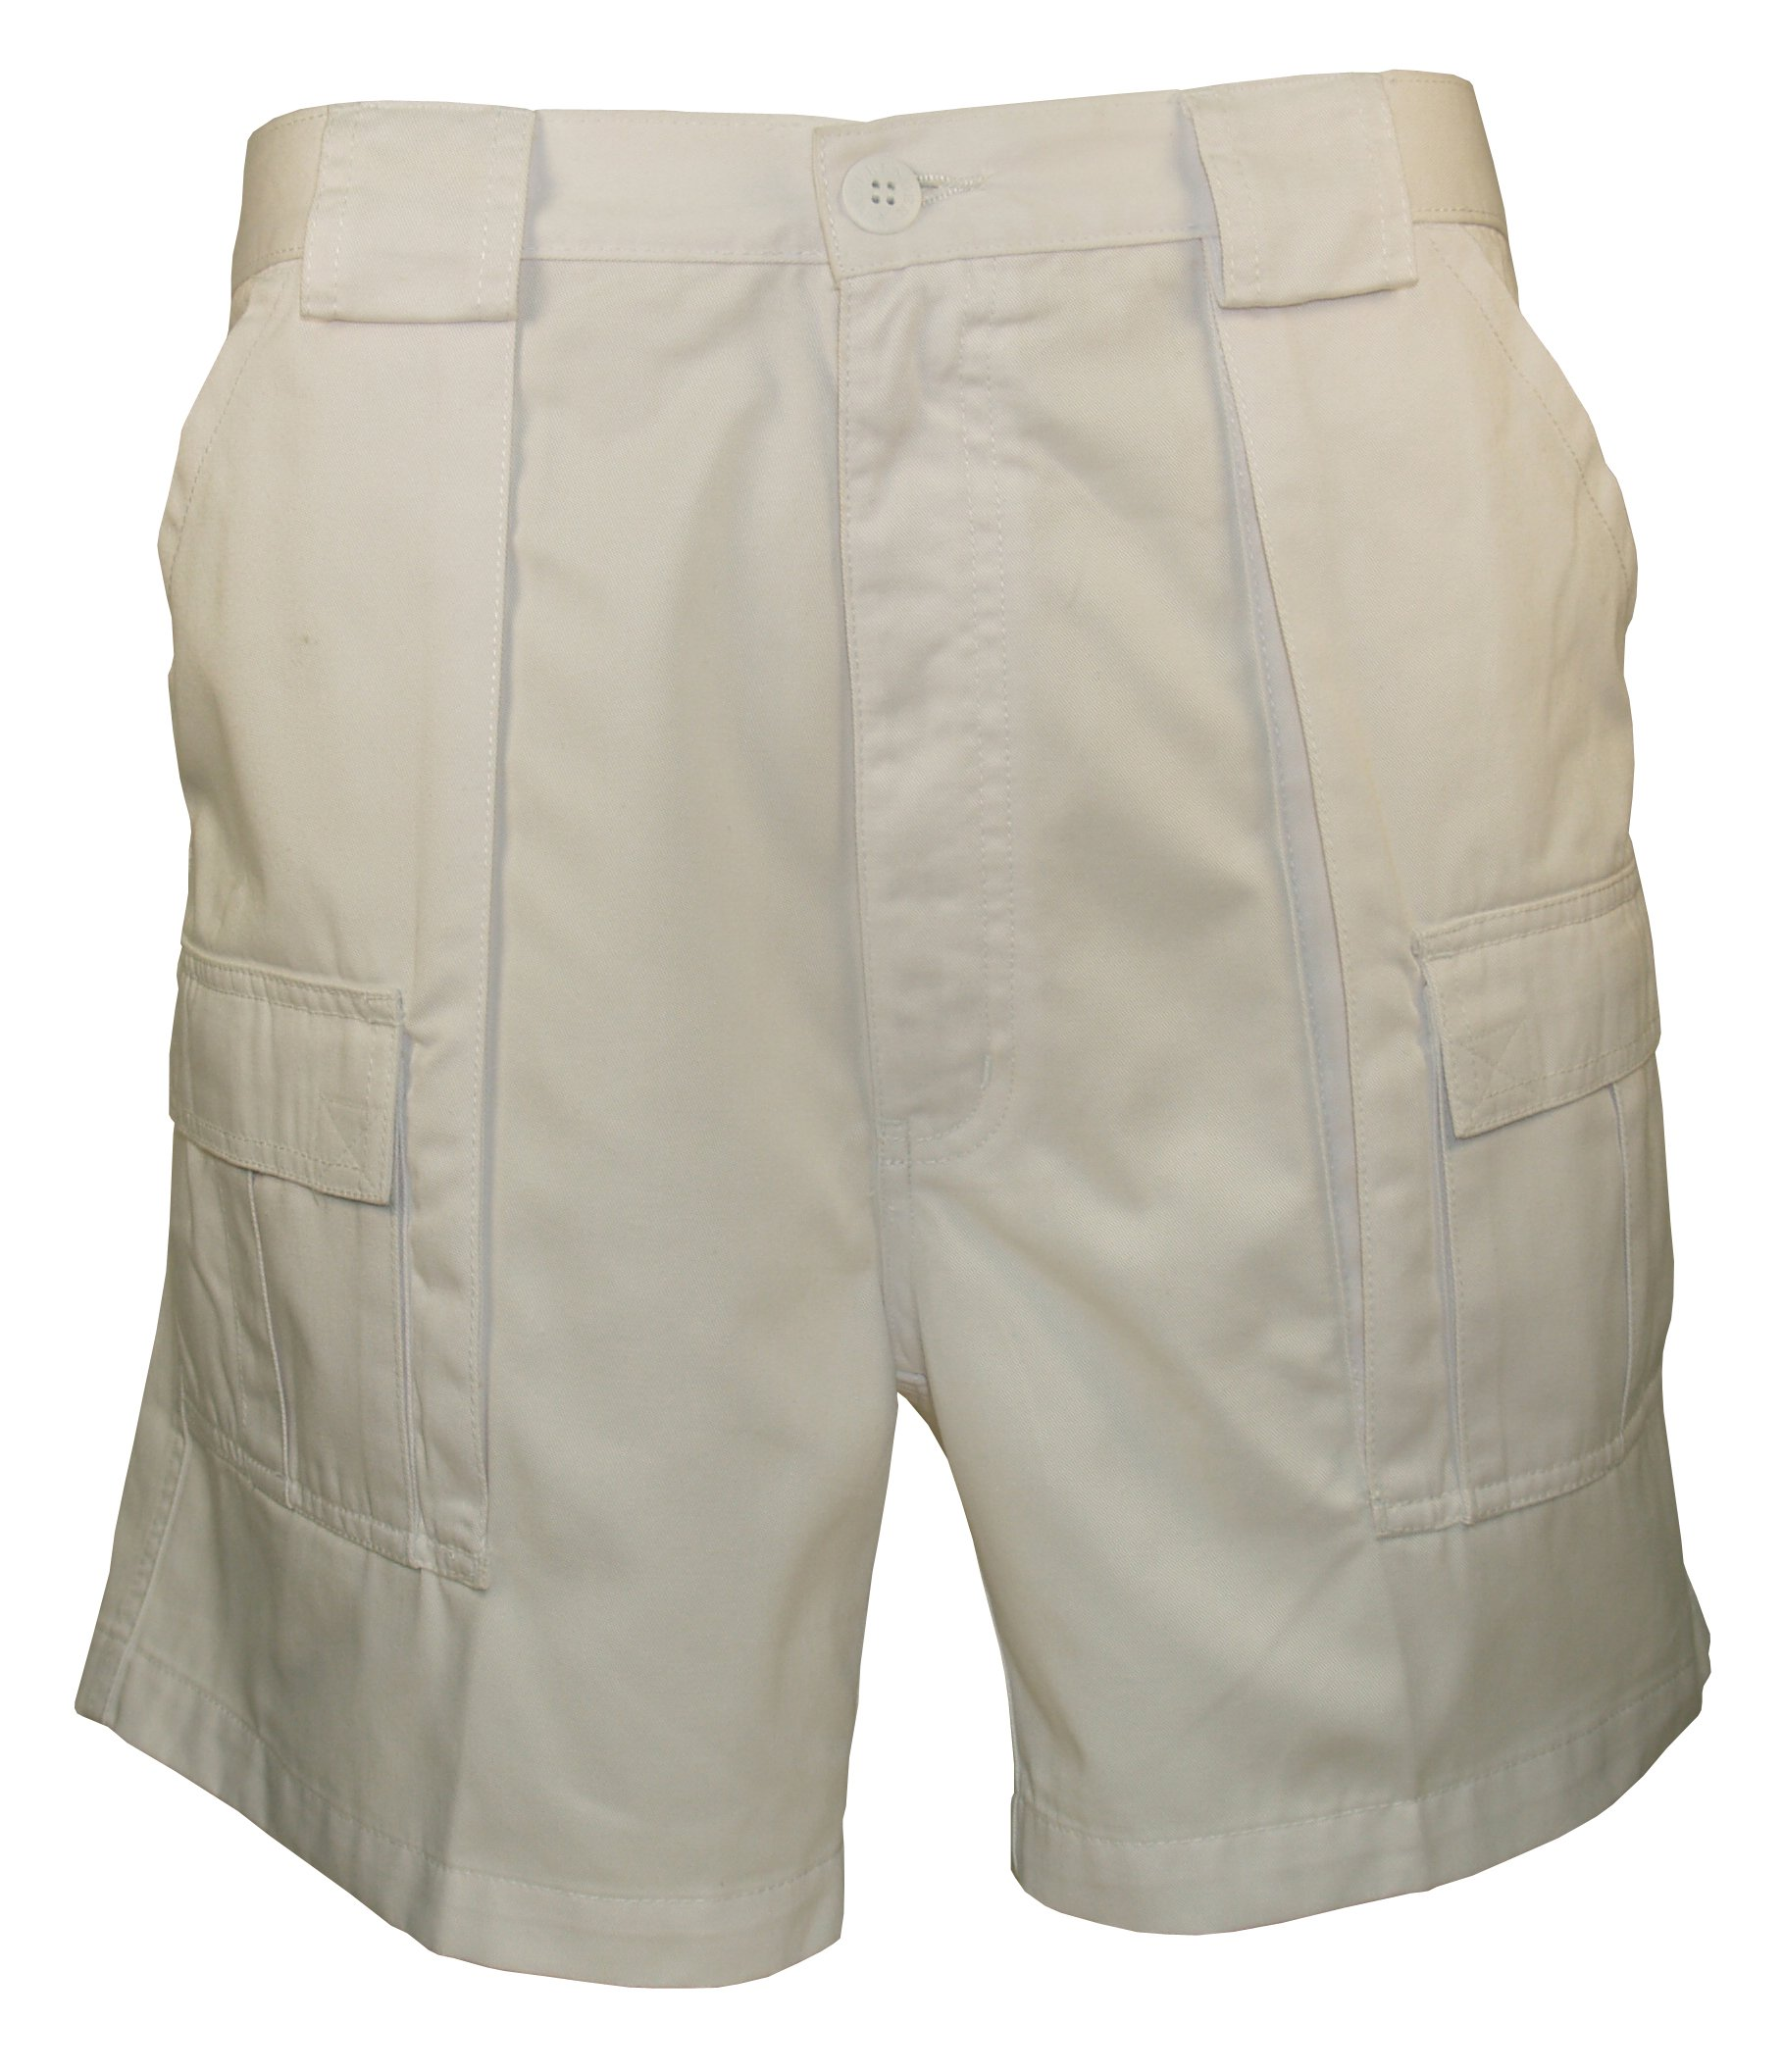 Cargo Short Shorts - Weekender Trader Casual Work Utility Polyester Cotton Twill Weave Shorts in White - 40